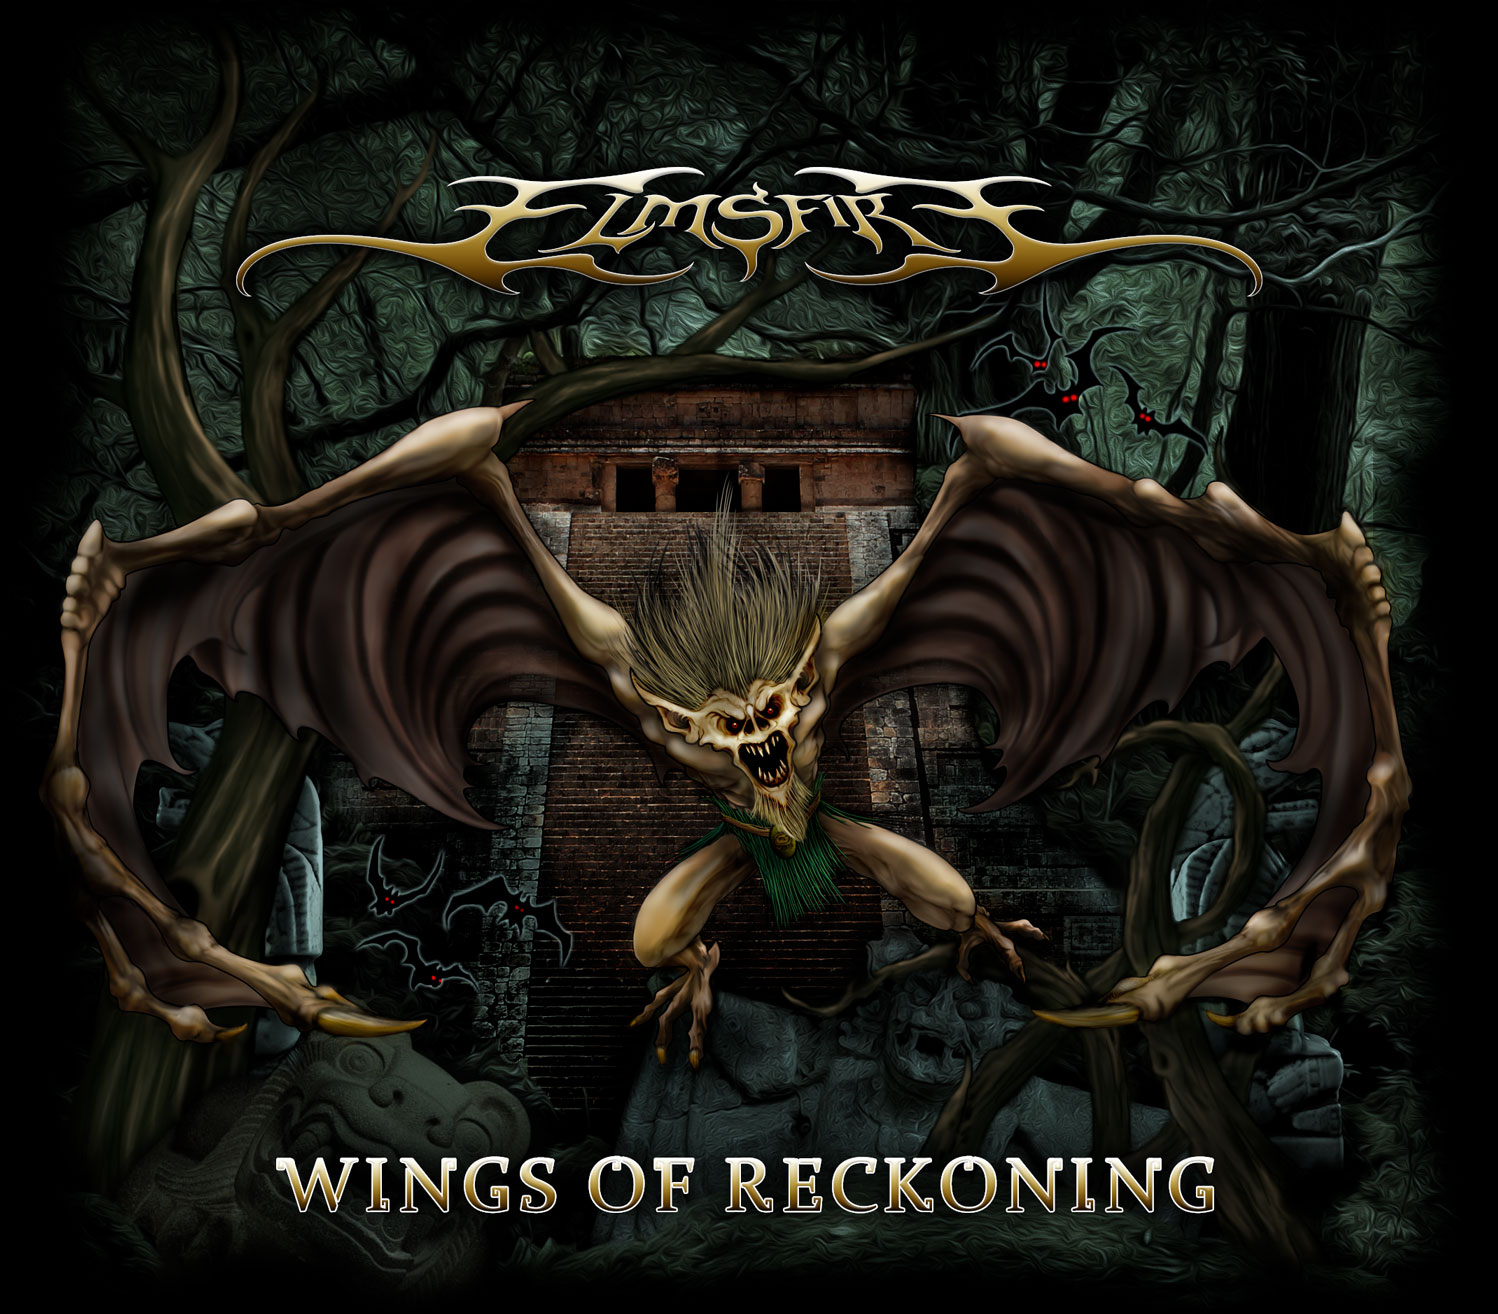 elmsire-wings-of-reckoning-ein-album-review